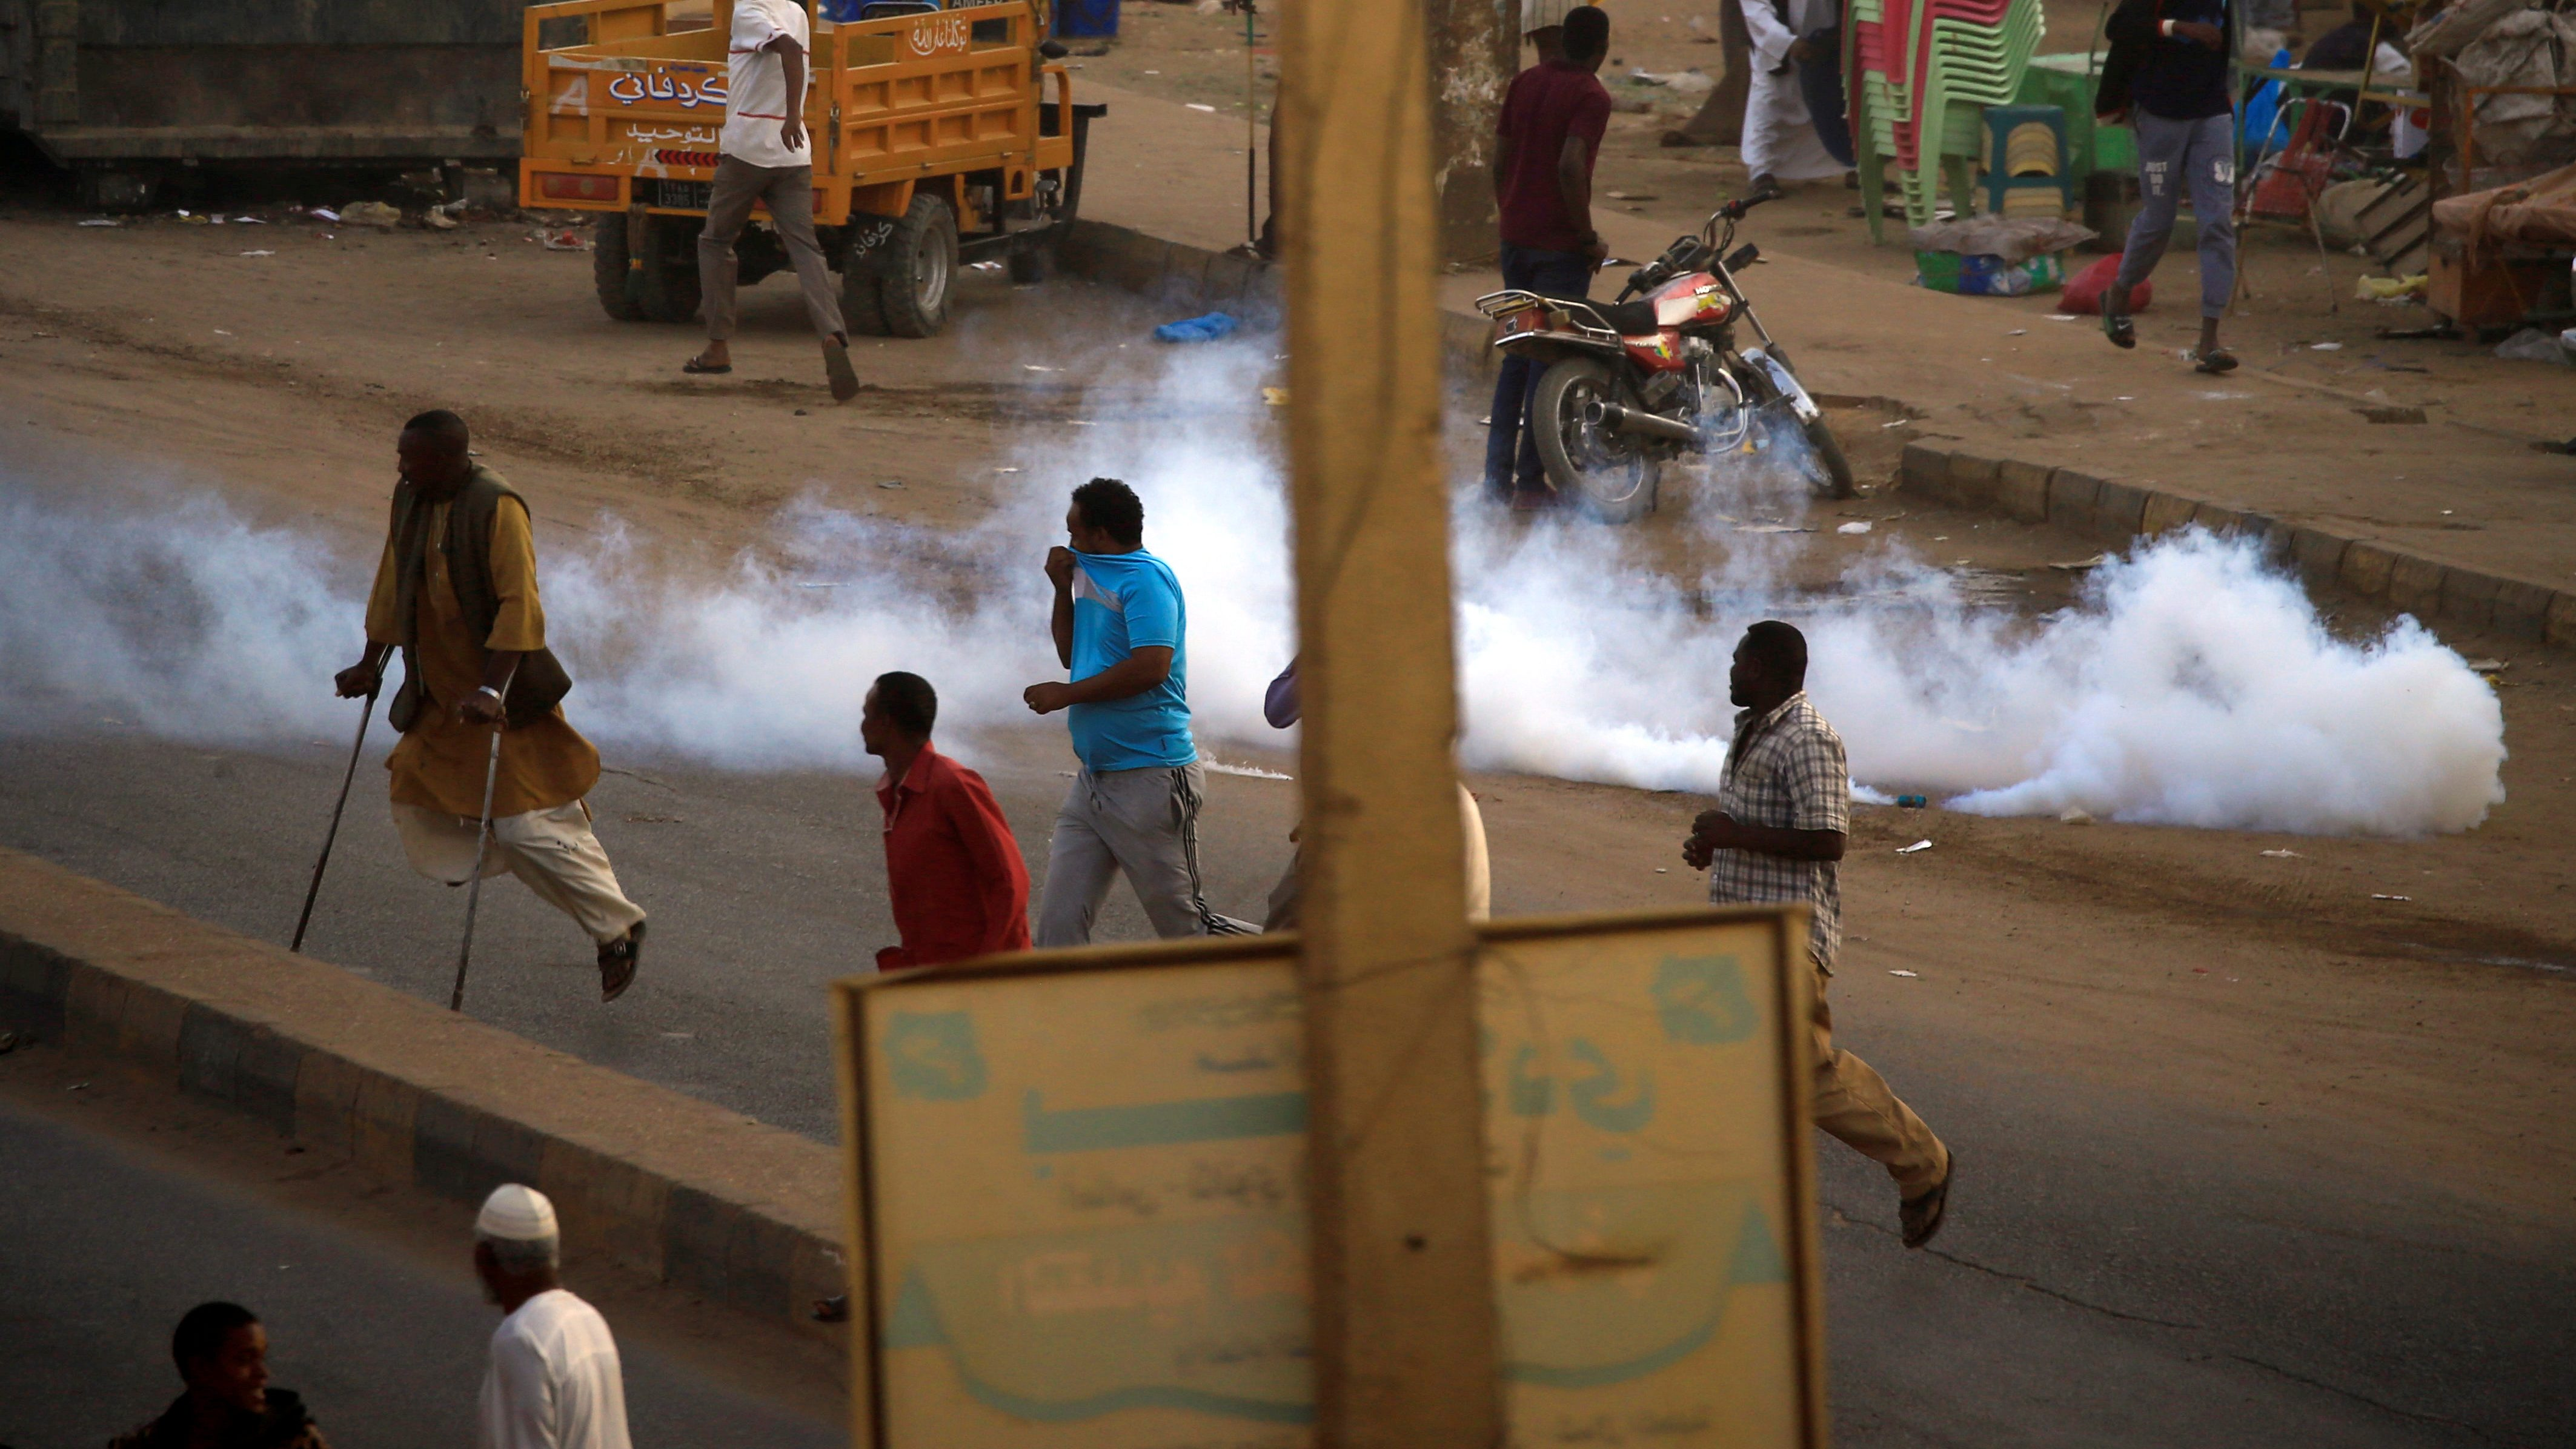 Sudan's uprising protesters are victims of tear gas abuse